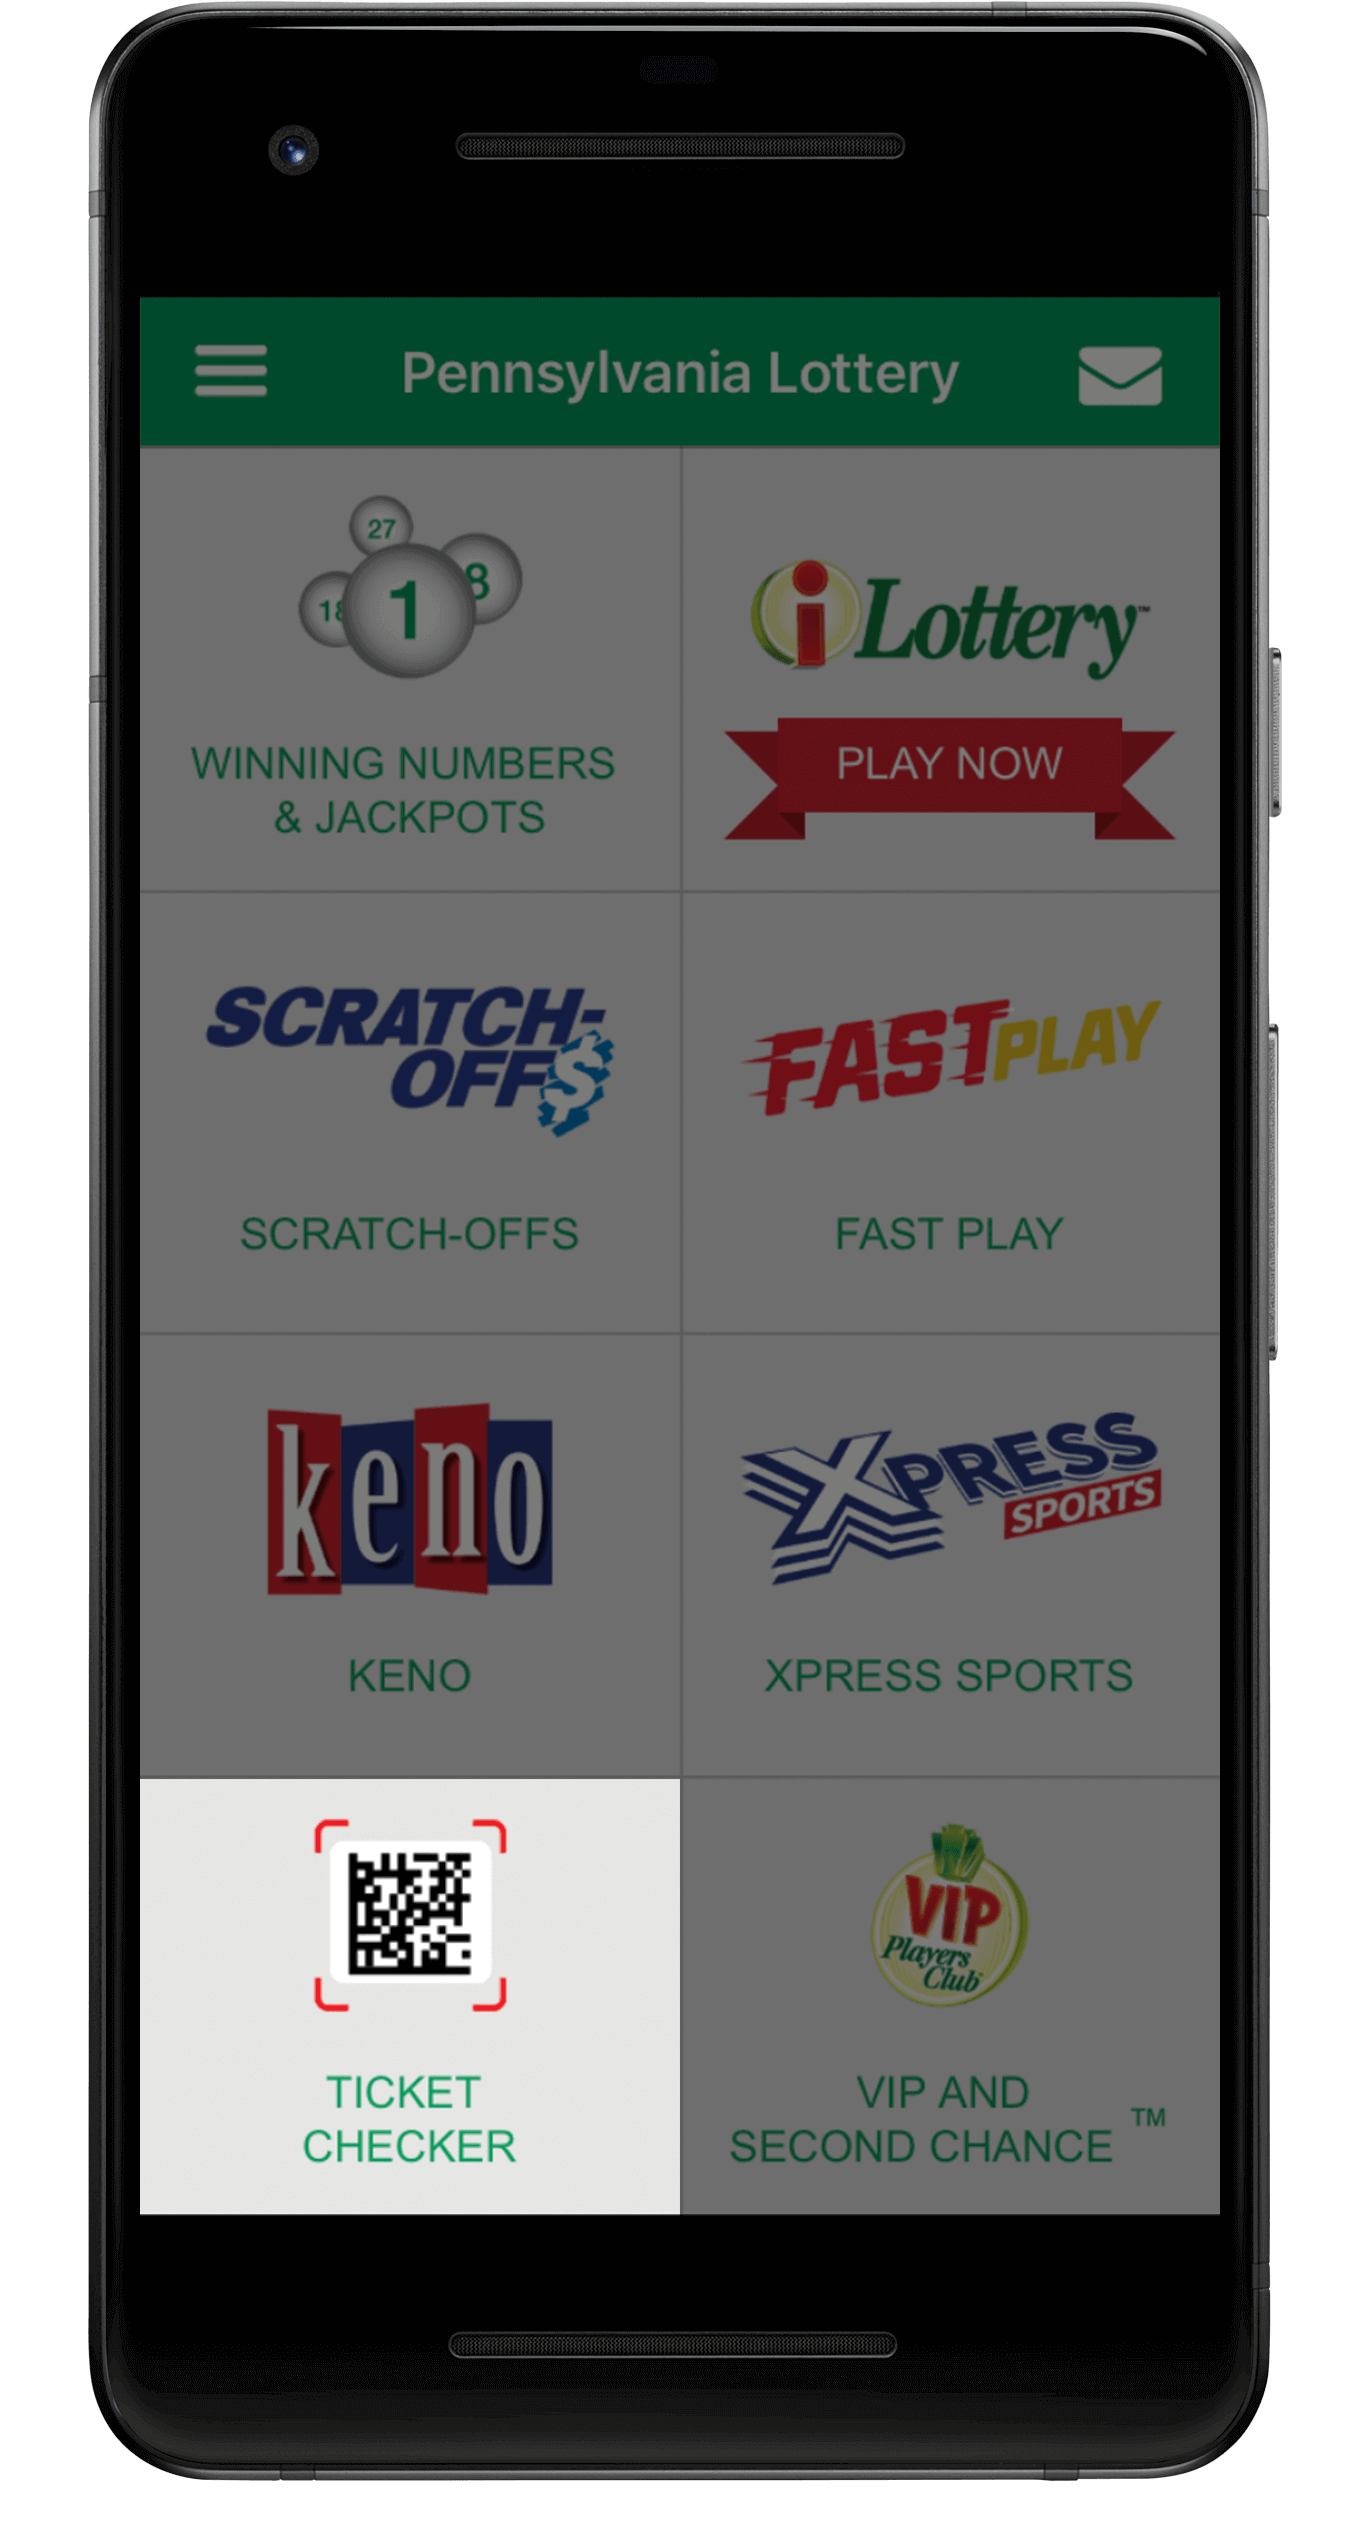 2nd Chance Lottery App